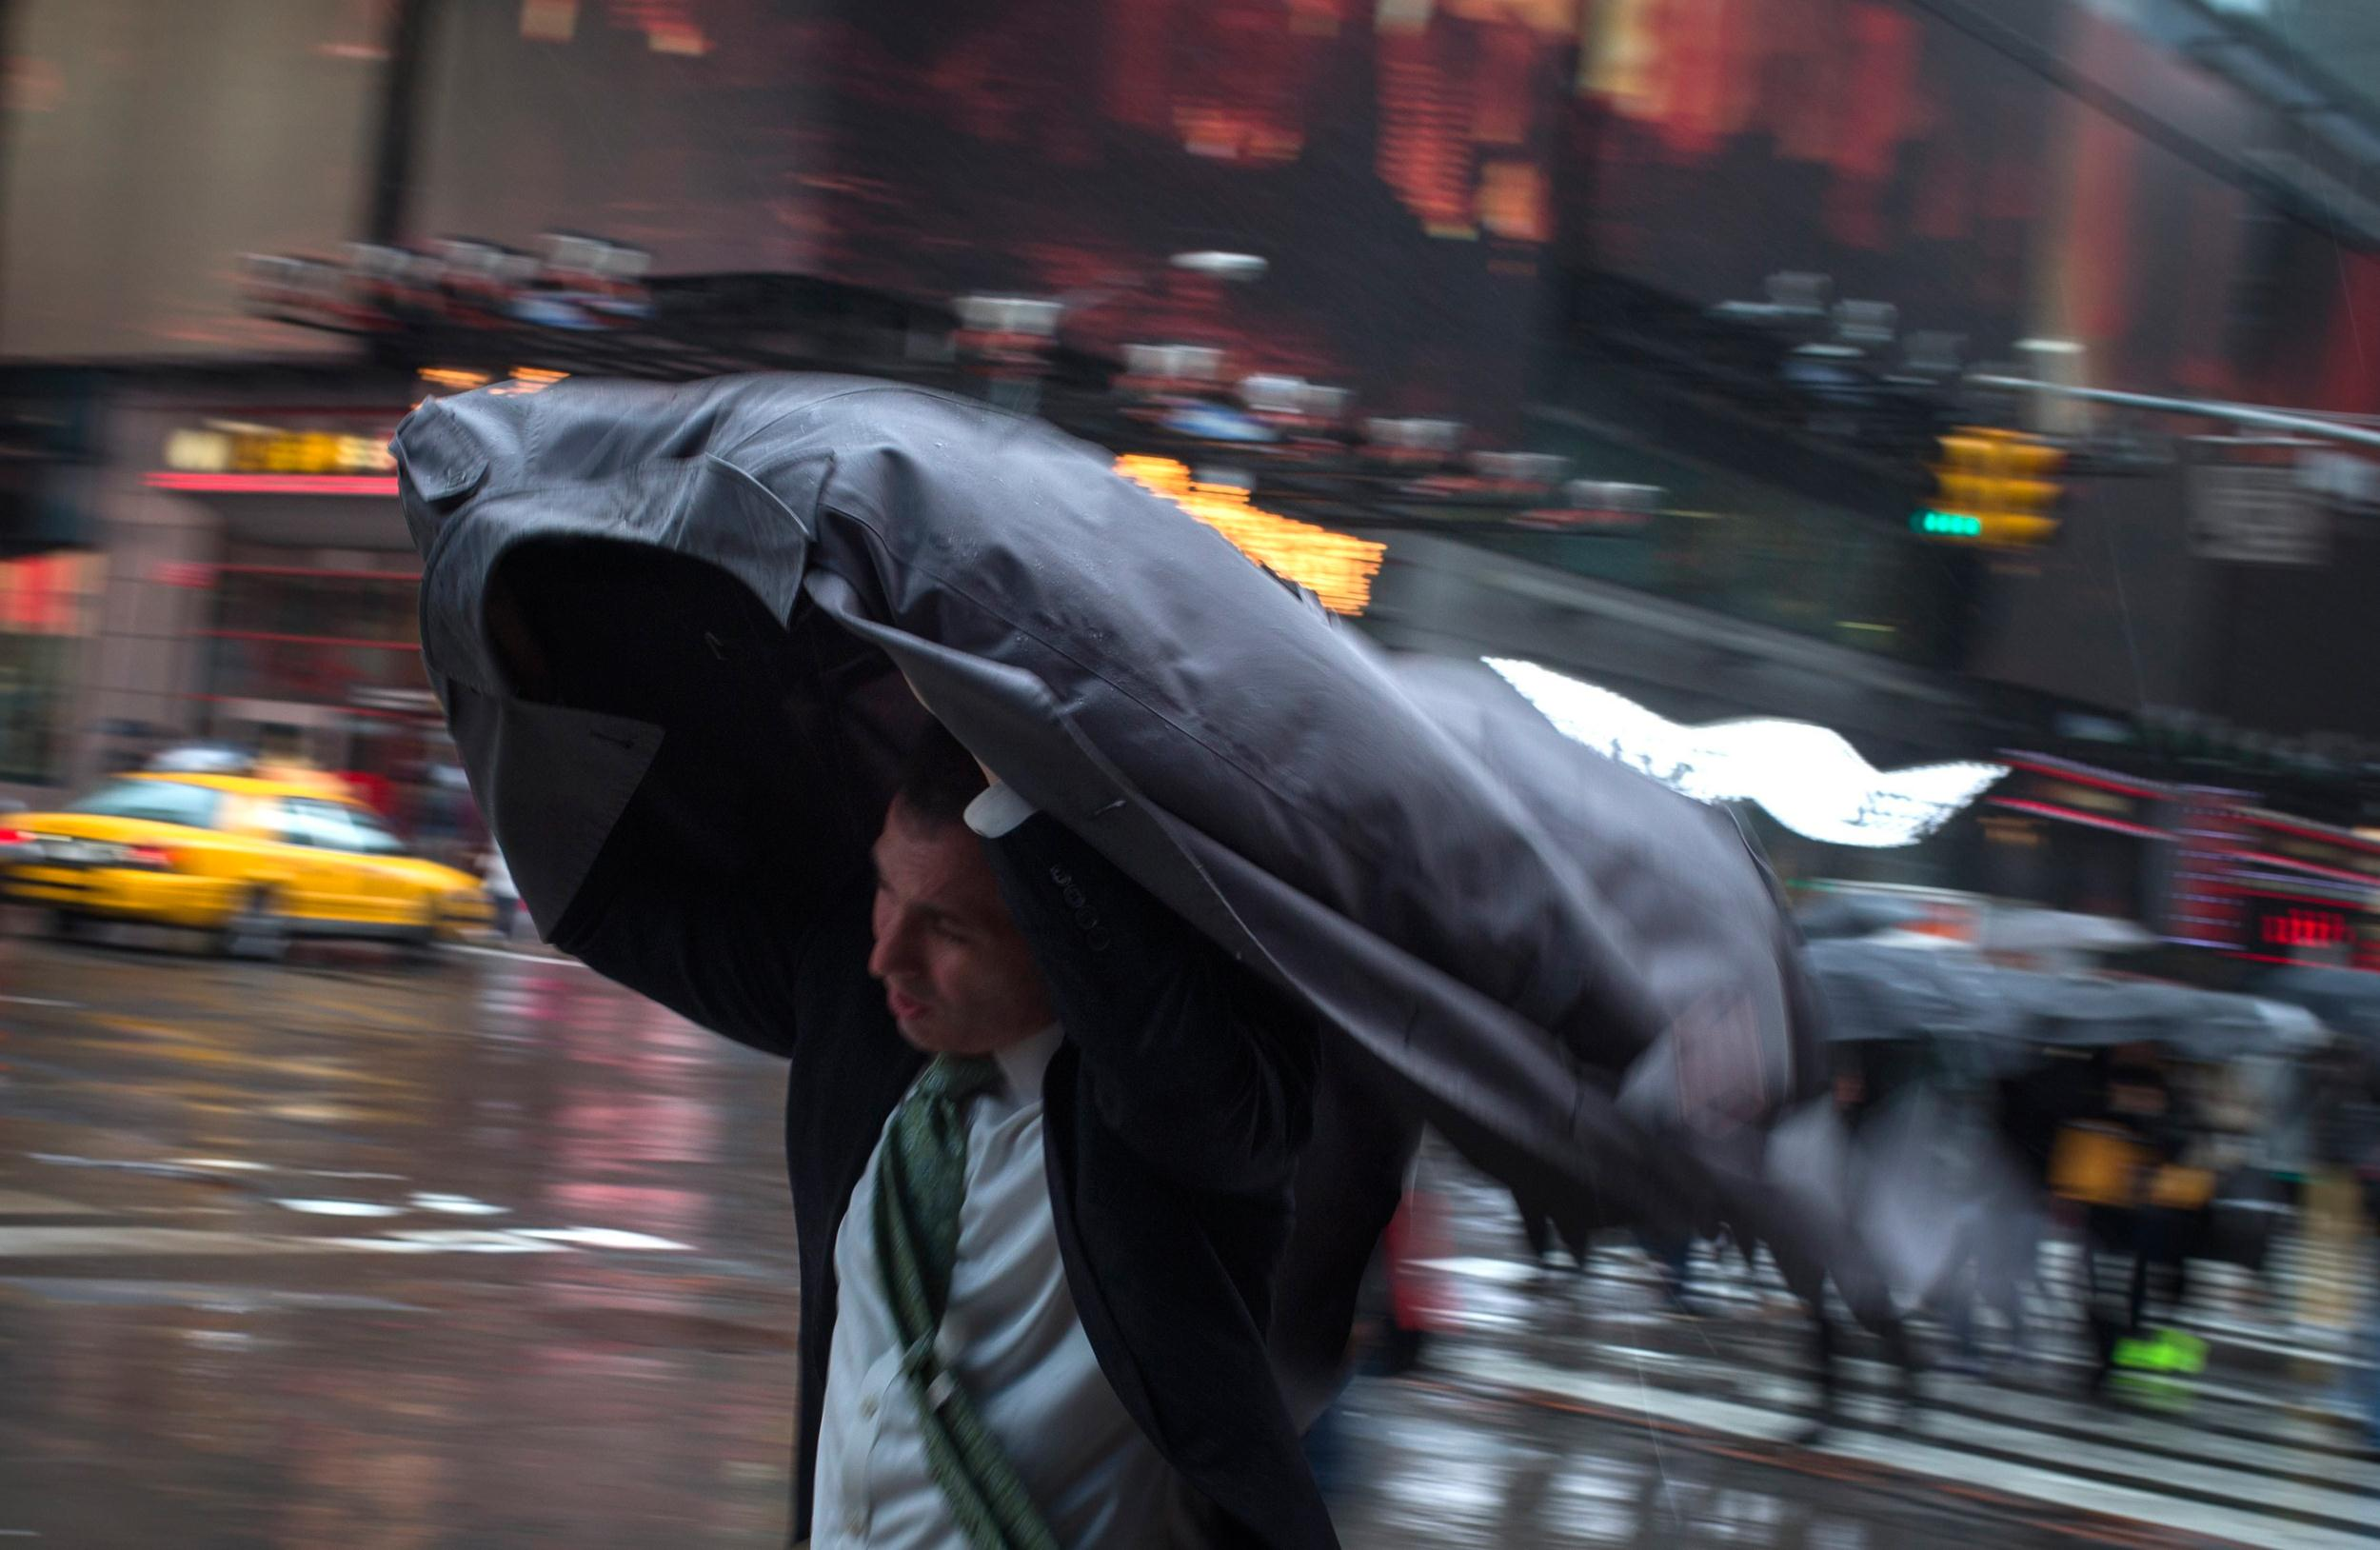 Image: A man uses his rain coat to guard against rain and wind as he commutes through Times Square, New York